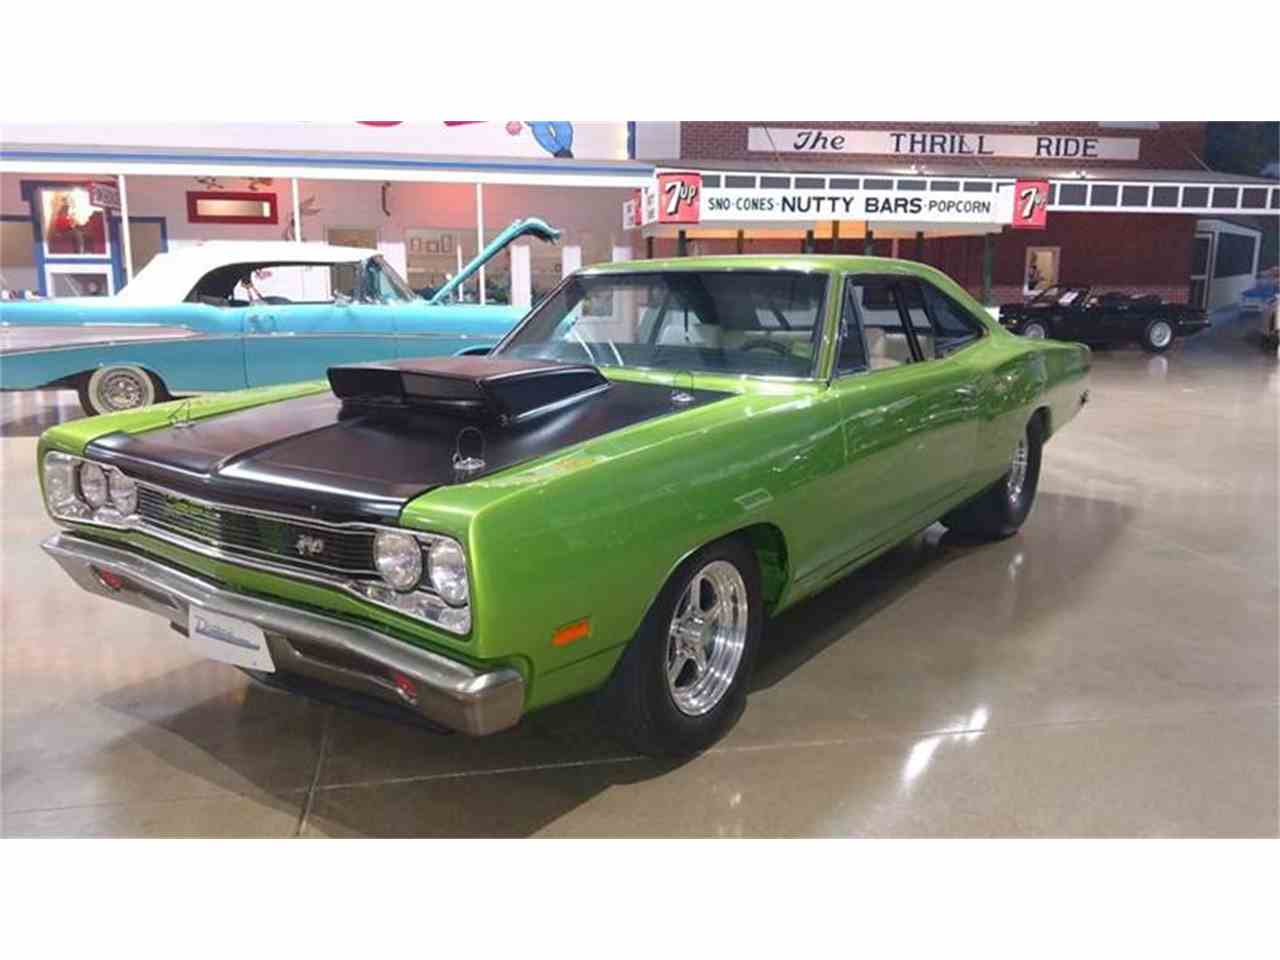 Classic Dodge Super Bee For Sale On Classiccars Com Available